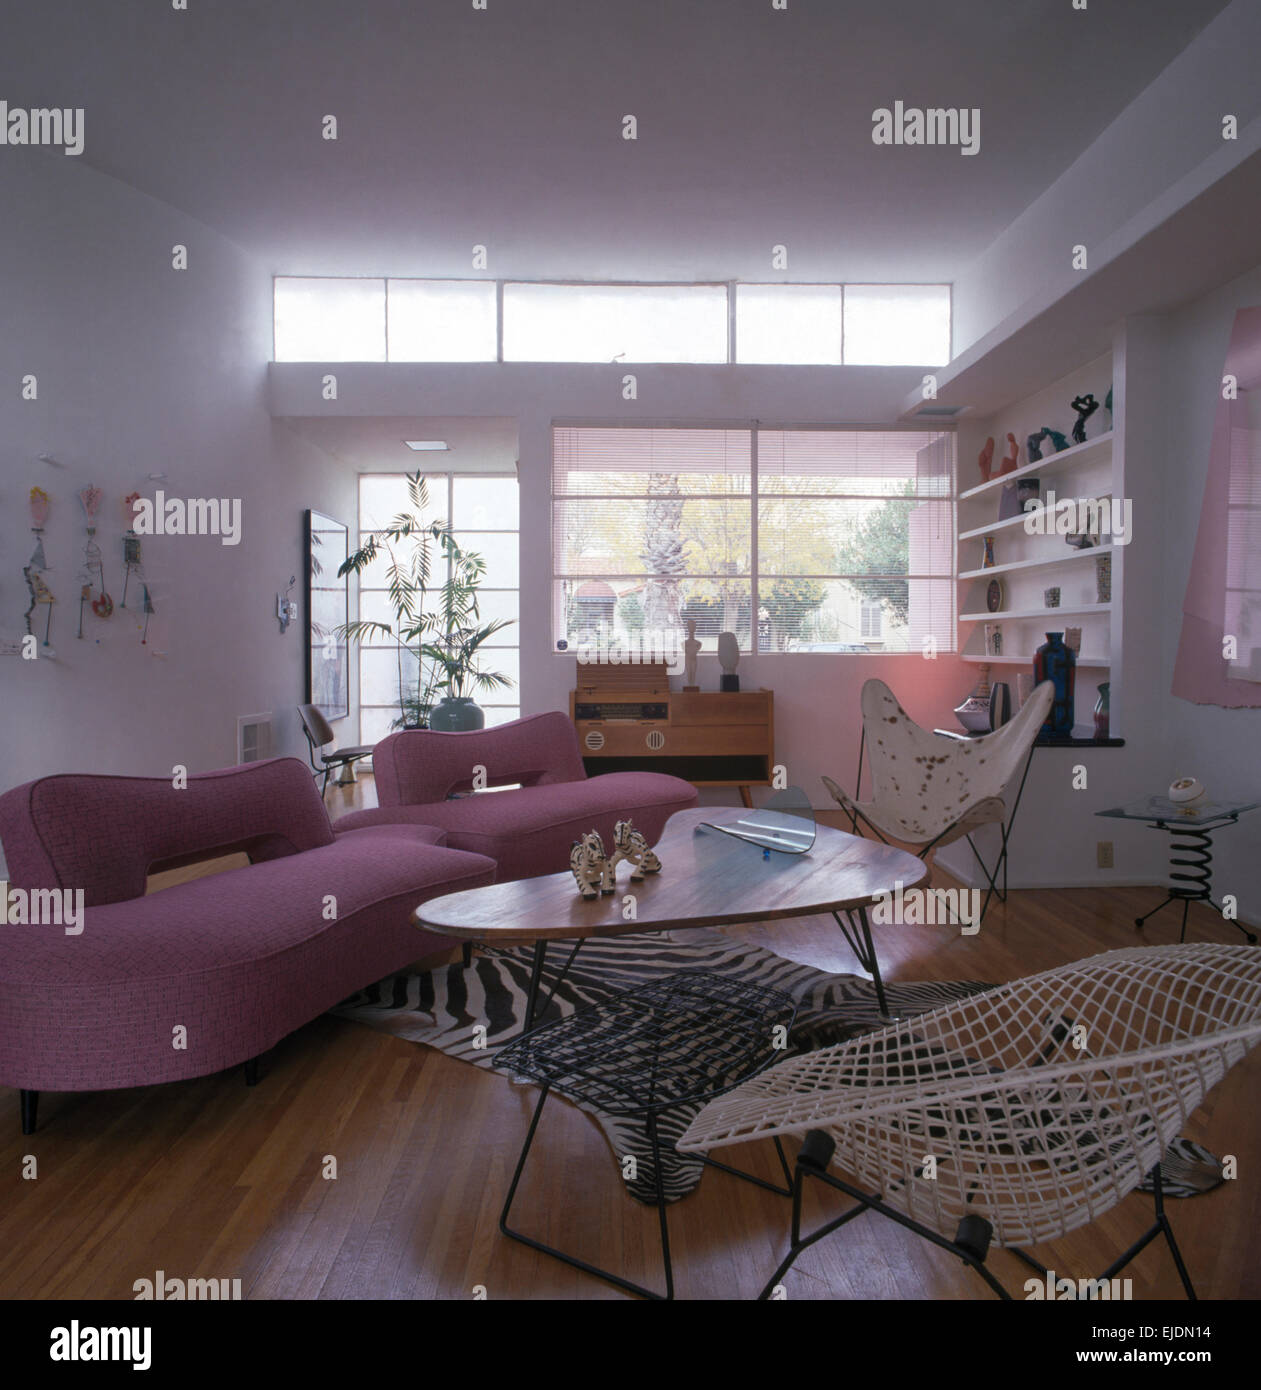 Awe Inspiring Pink Sofas And Cowhide Hardoy Bkf Butterfly Chairs With Dailytribune Chair Design For Home Dailytribuneorg